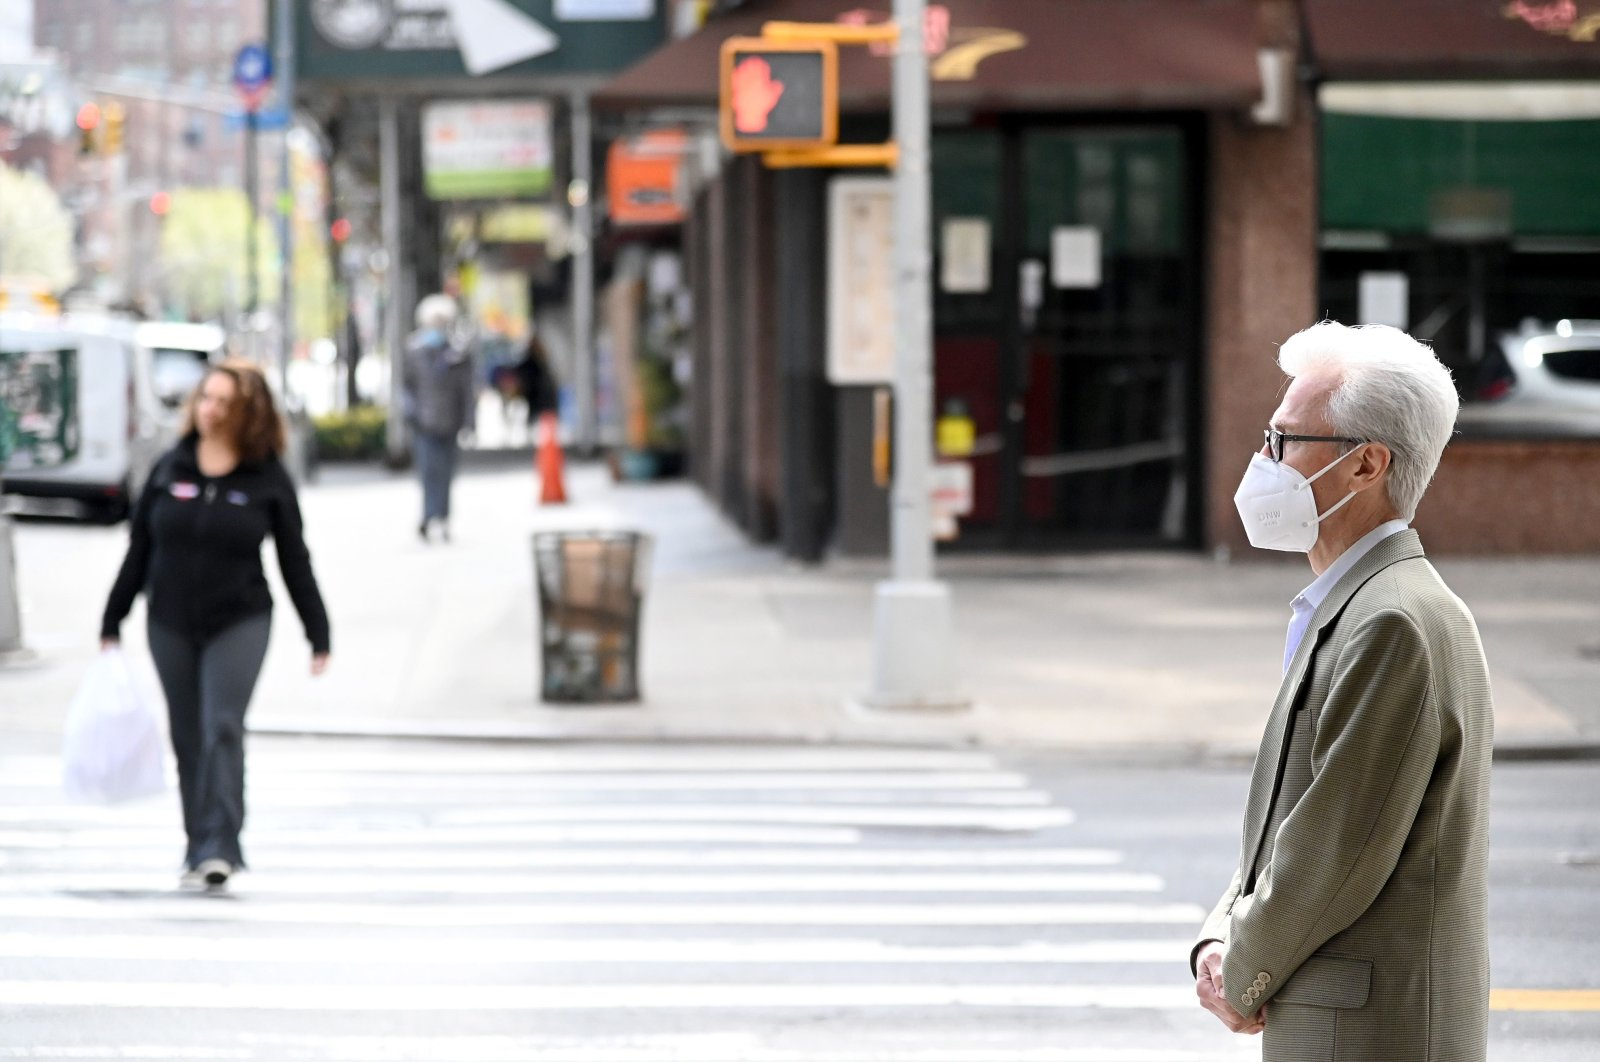 A man wearing a face mask looks on during the coronavirus pandemic, New York, U.S., April 8, 2020. (AFP Photo)